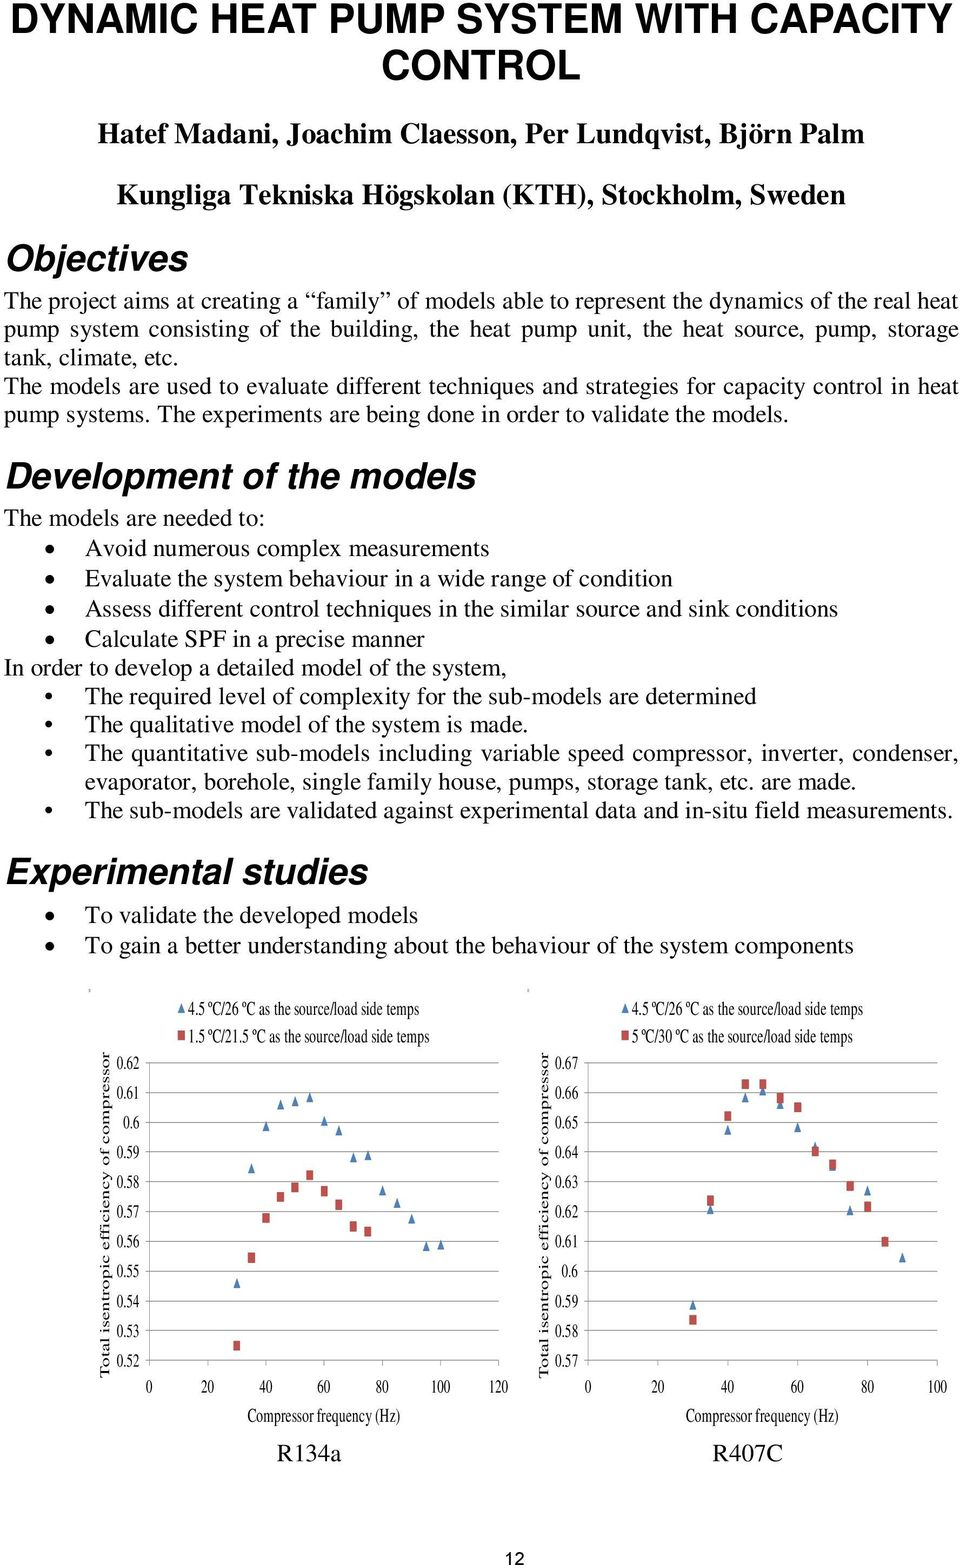 The models are used to evaluate different techniques and strategies for capacity control in heat pump systems. The experiments are being done in order to validate the models.